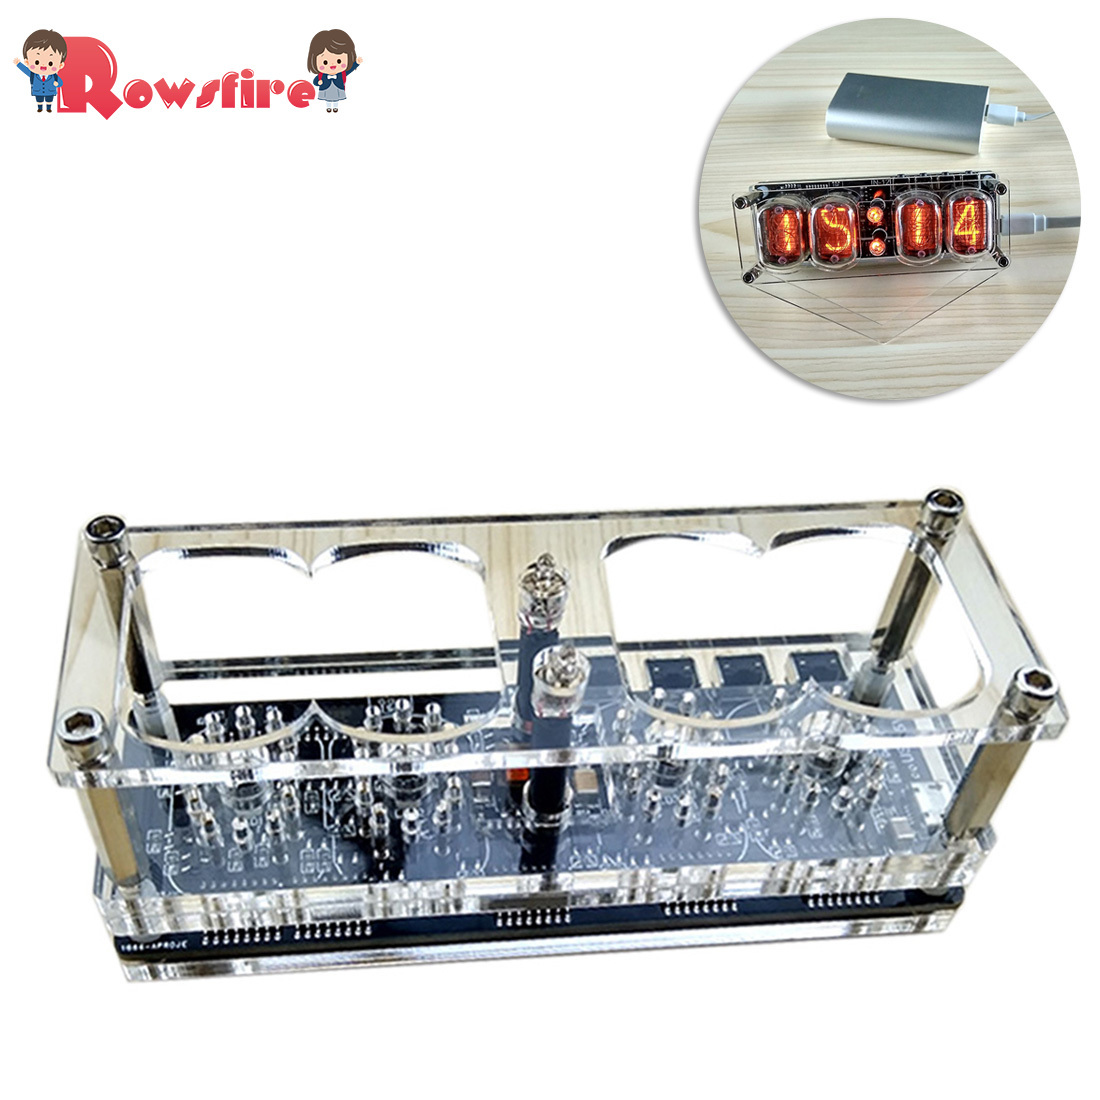 DIY Glow Tube Clock Base Four Digital Glow Tube Clock For Glow Tube (No Glow Tube ) -Basic /Advanced Version